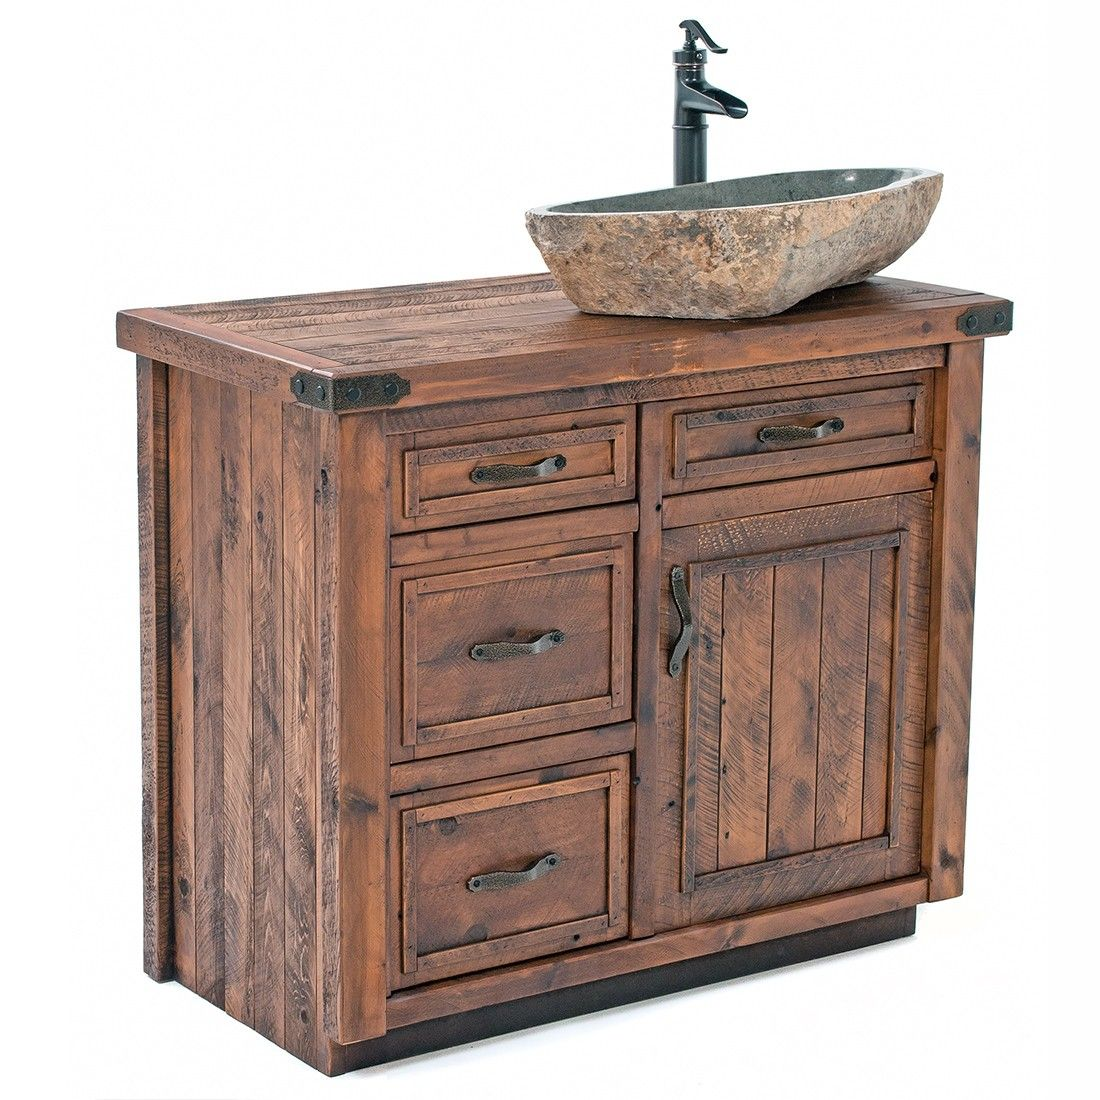 Timber Haven Rustic Barnwood Vanity 24 42 Timber Bathroom Vanities Rustic Bathroom Vanities Rustic Vanity